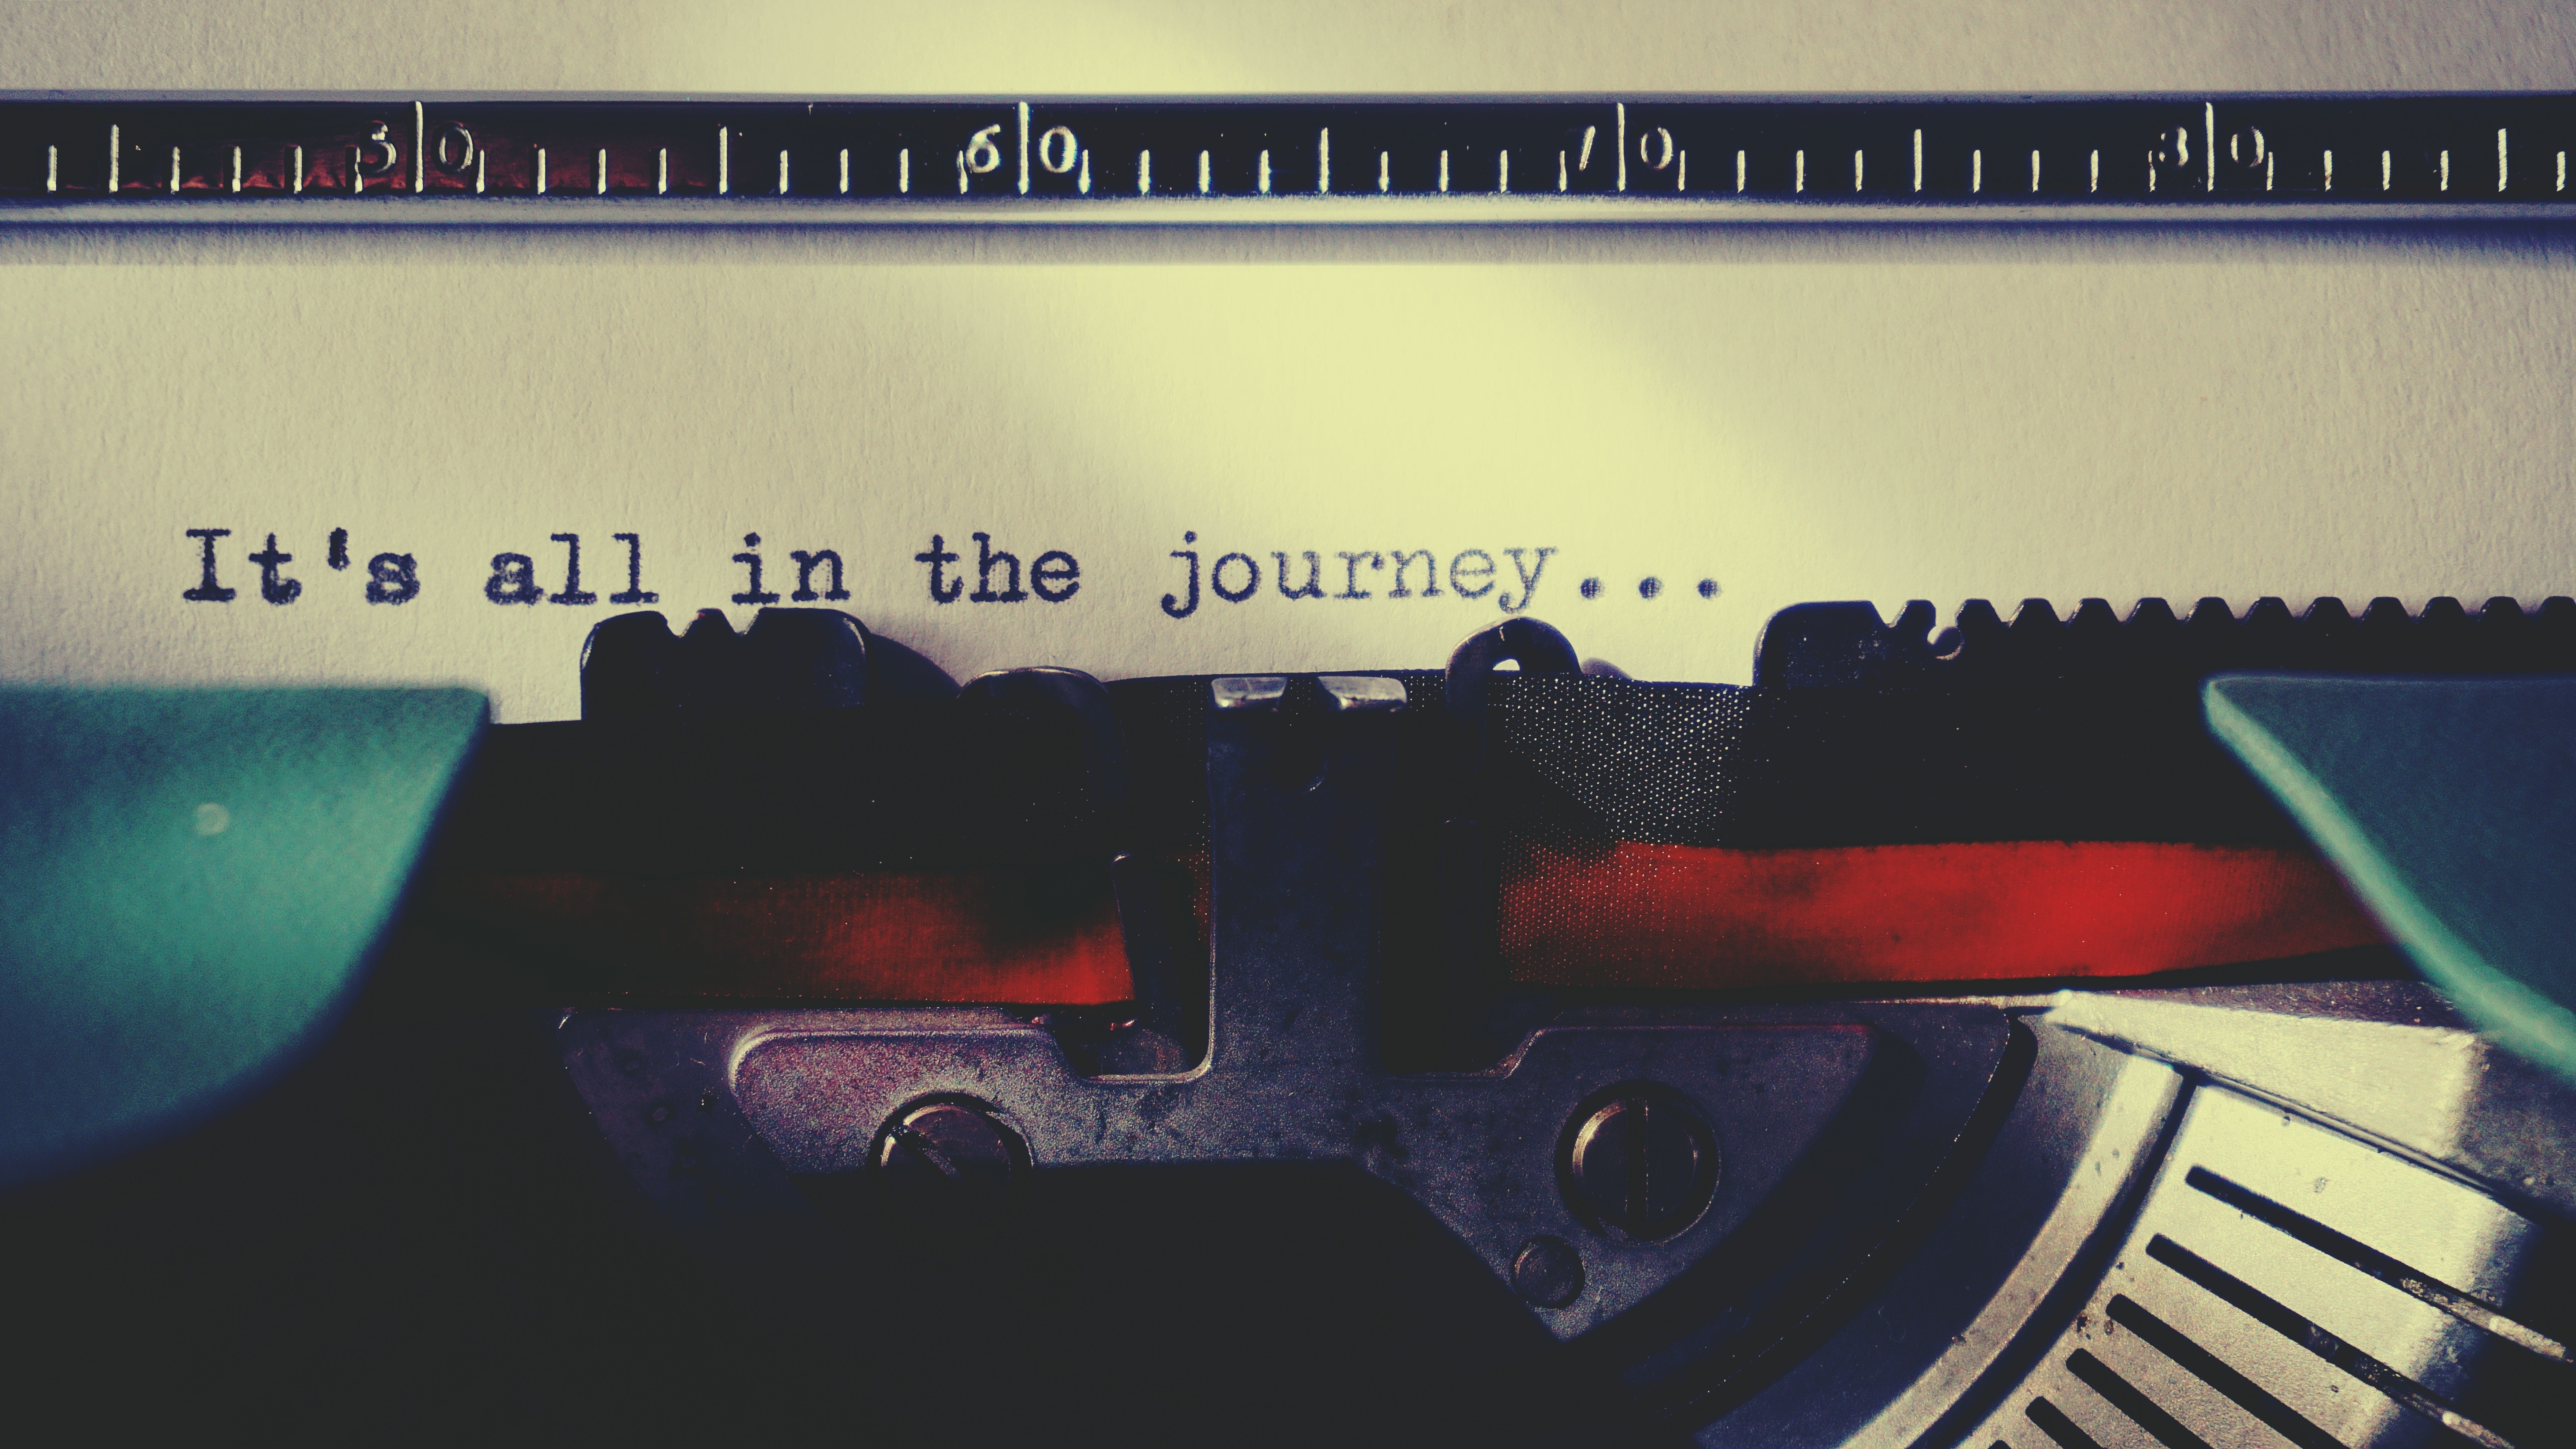 Typewriter with 'It's all in the journey' shown on paper